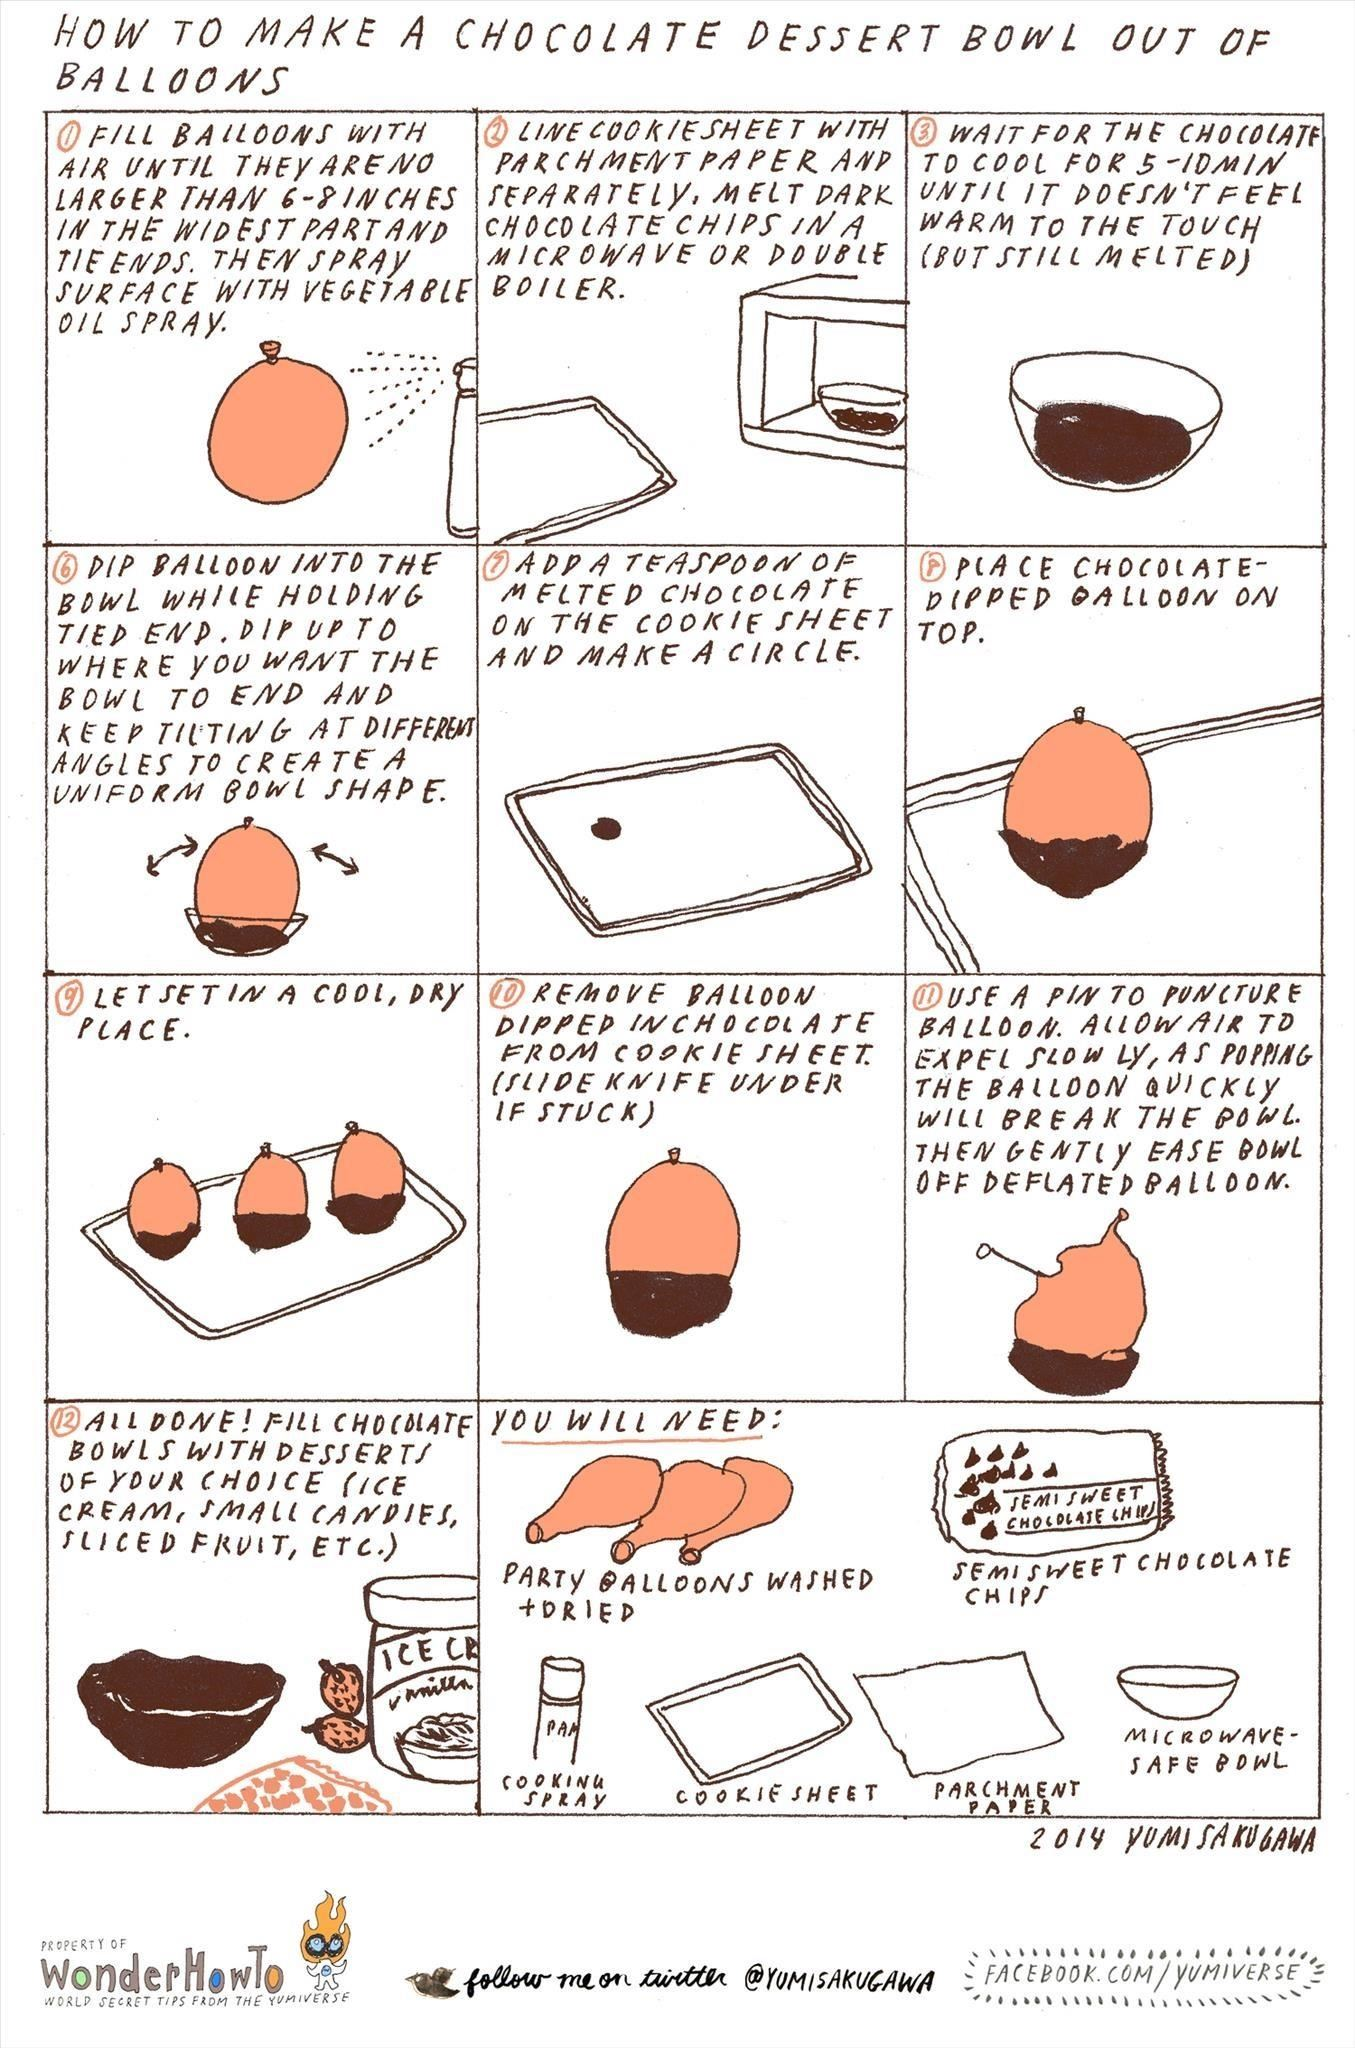 How to Make Chocolate Dessert Bowls Using Inflated Balloons